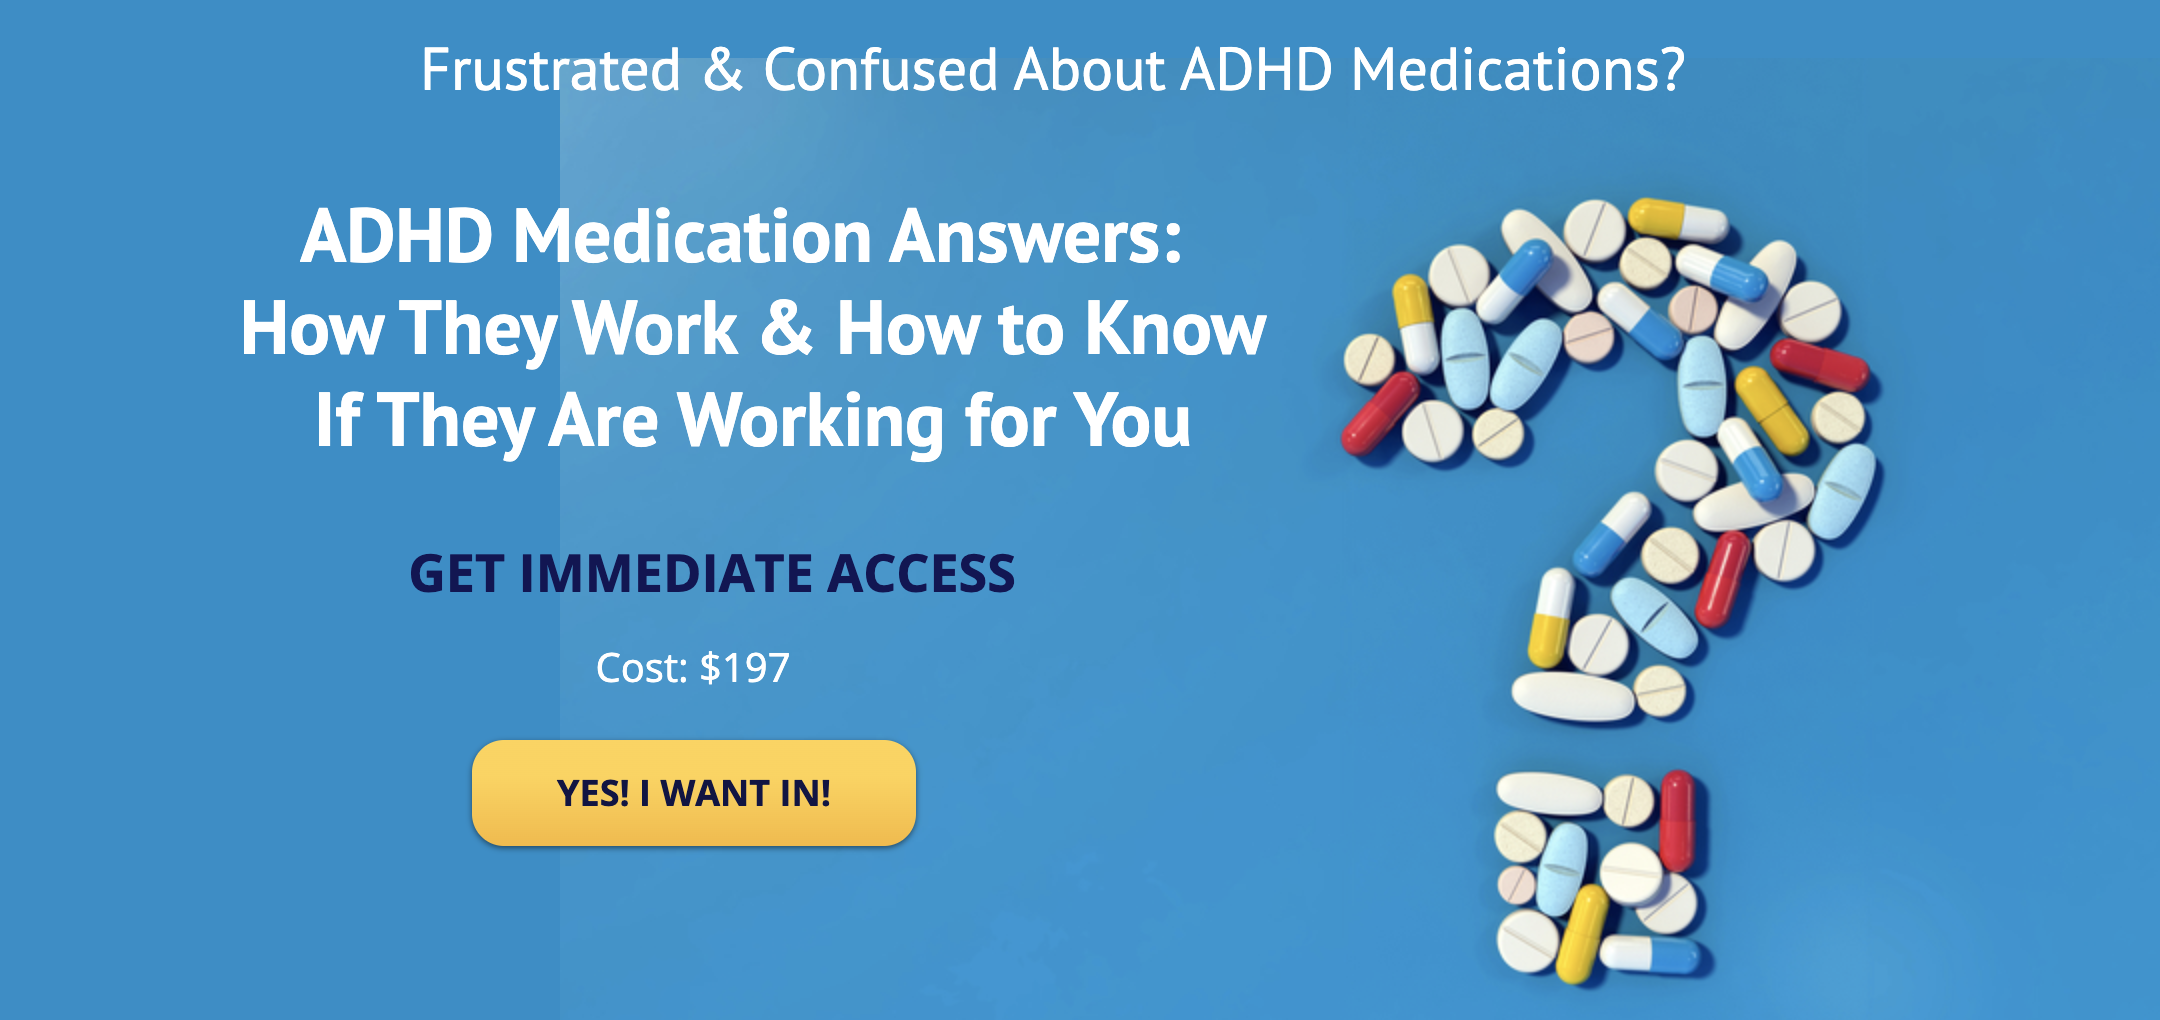 ADHD medication answers:  Get accurate, professional, expert yet understandable level of how ADHD medications work.